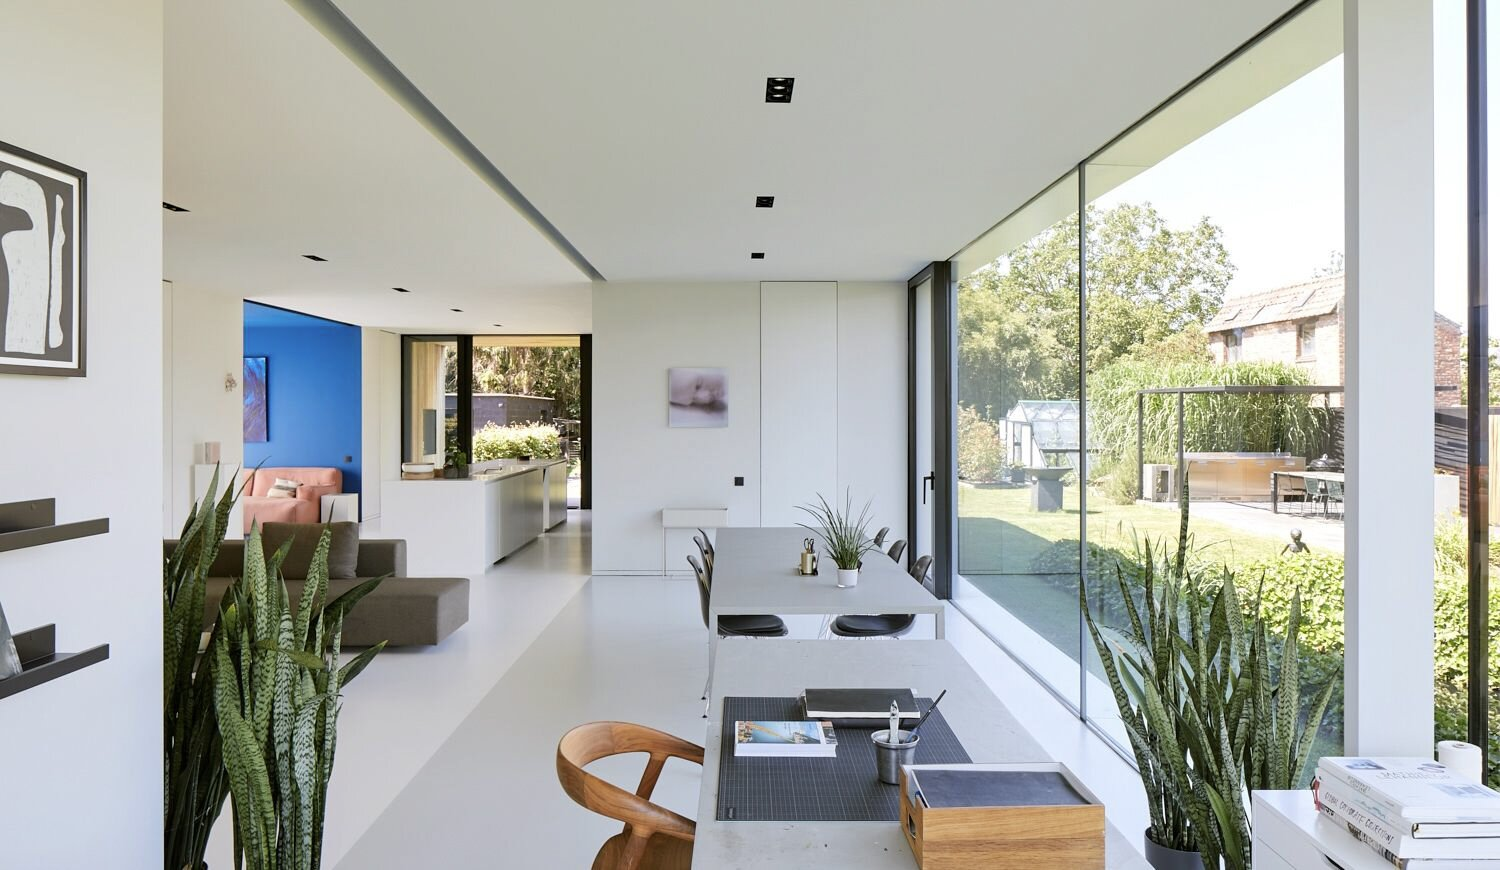 The glazed wall overlooks a backyard garden, which can also be accessed directly by a door near the dining area.  Photo 8 of 17 in For €795K, You Can Buy This Boxy Belgian Home With a Surprisingly Colorful Interior